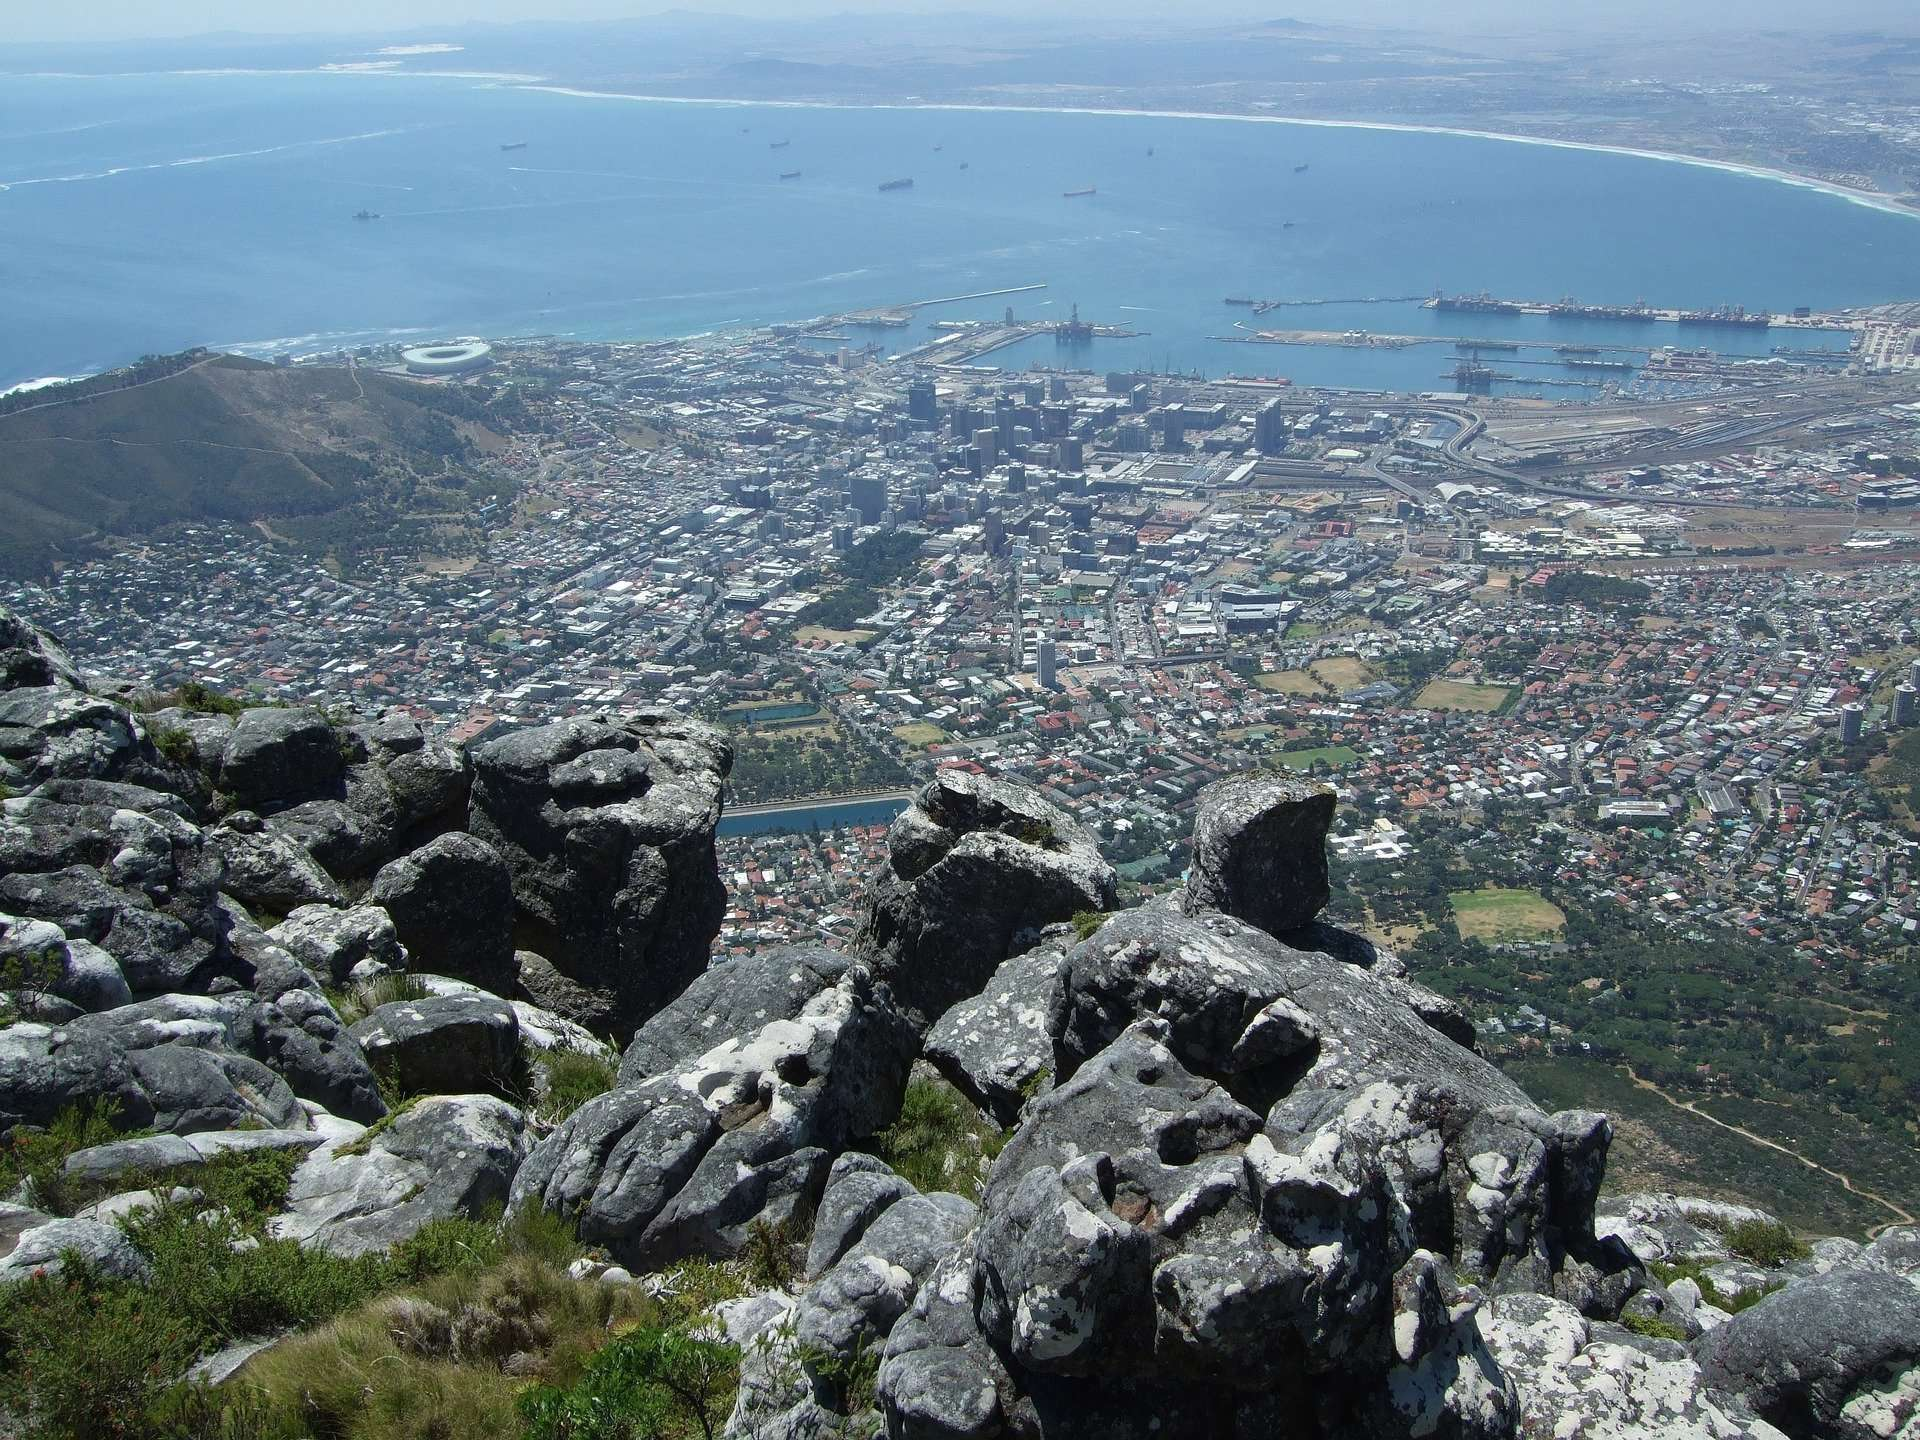 Cape Town, warm winter vacation, beach holidays, South Africa vacation